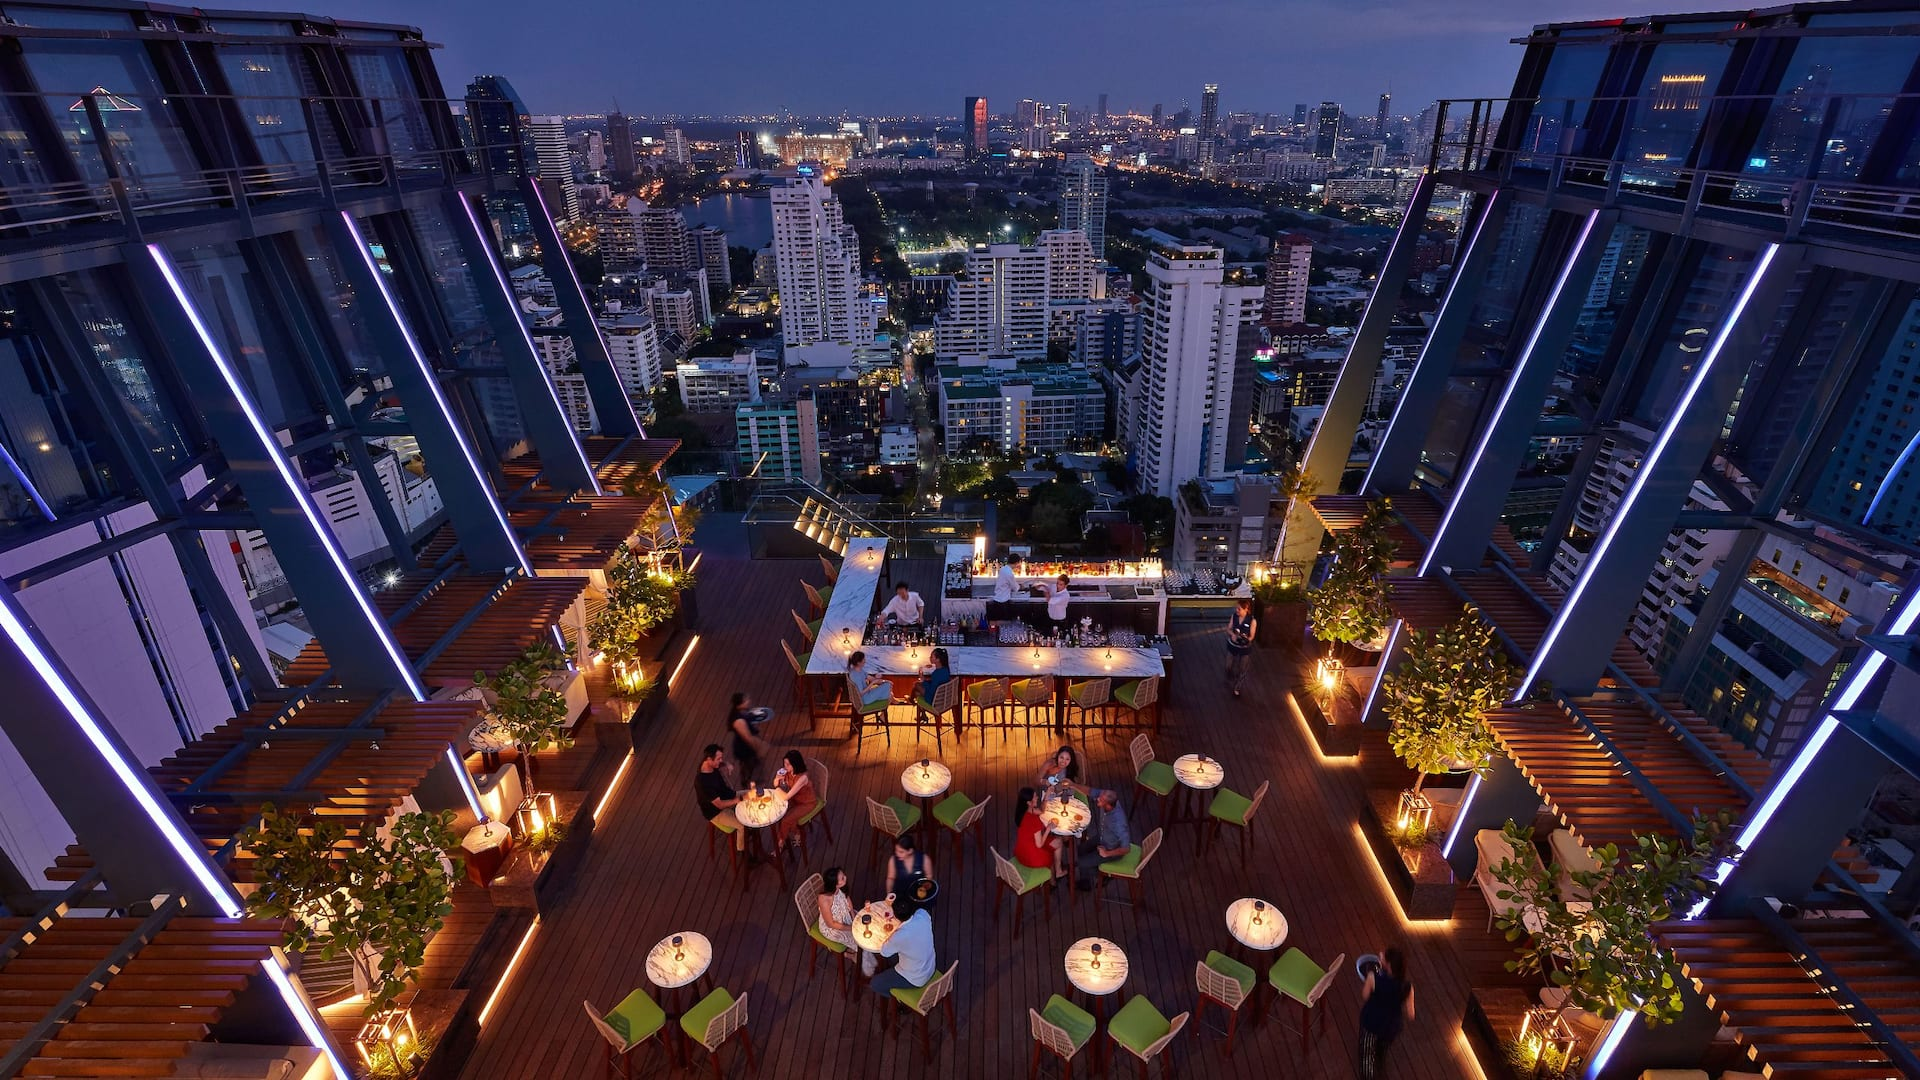 Spectrum Lounge & Bar | Best Rooftop Bar in Bangkok with Live Piano Bar and Live DJ